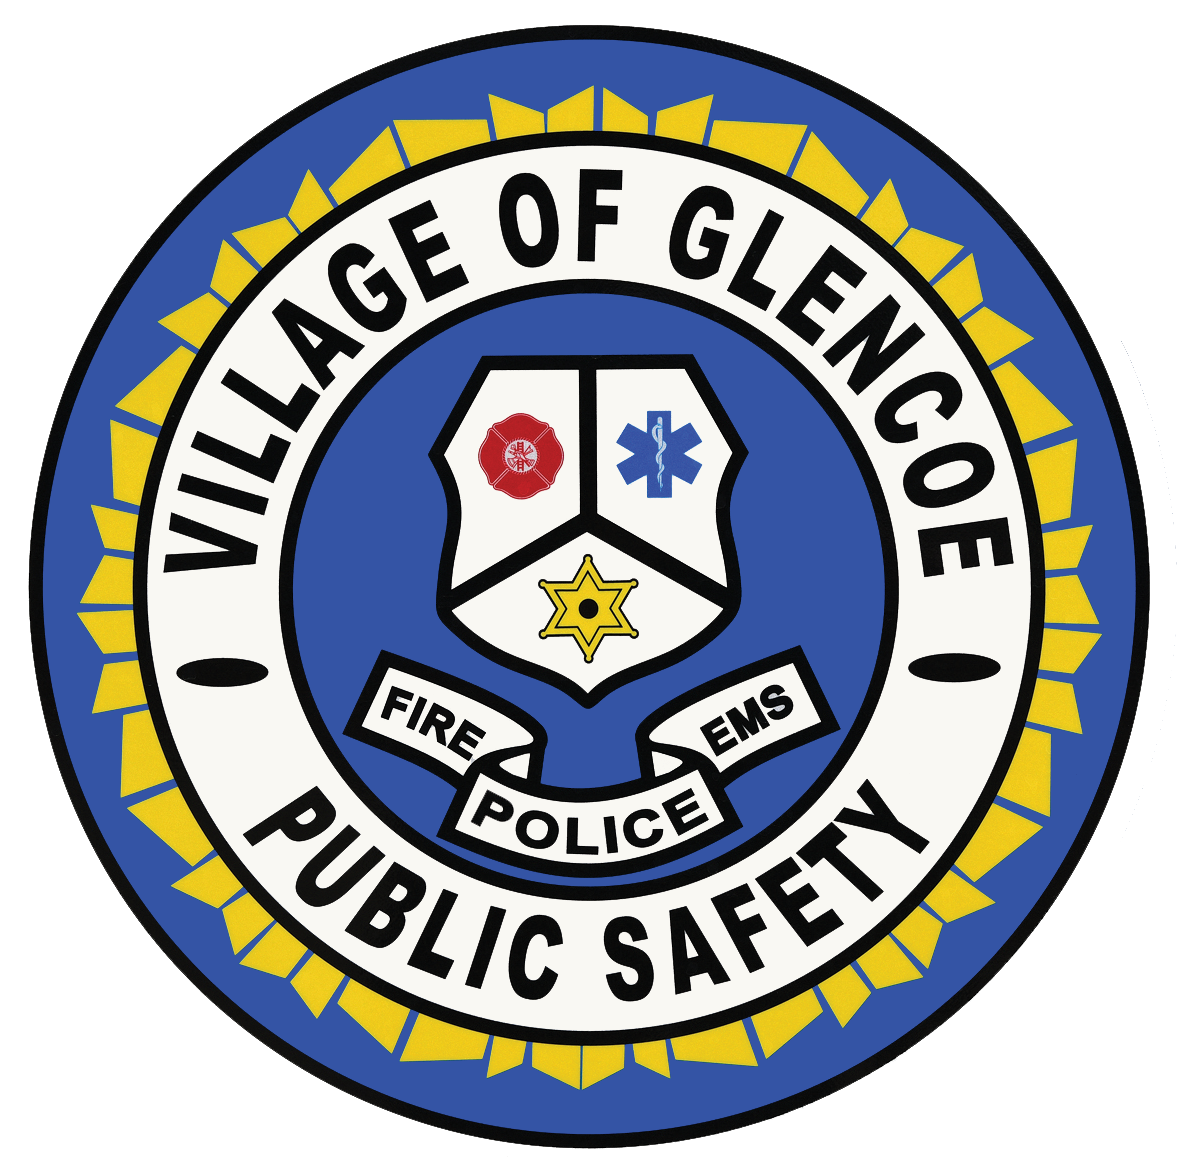 Glencoe-Public-Safety-Logo